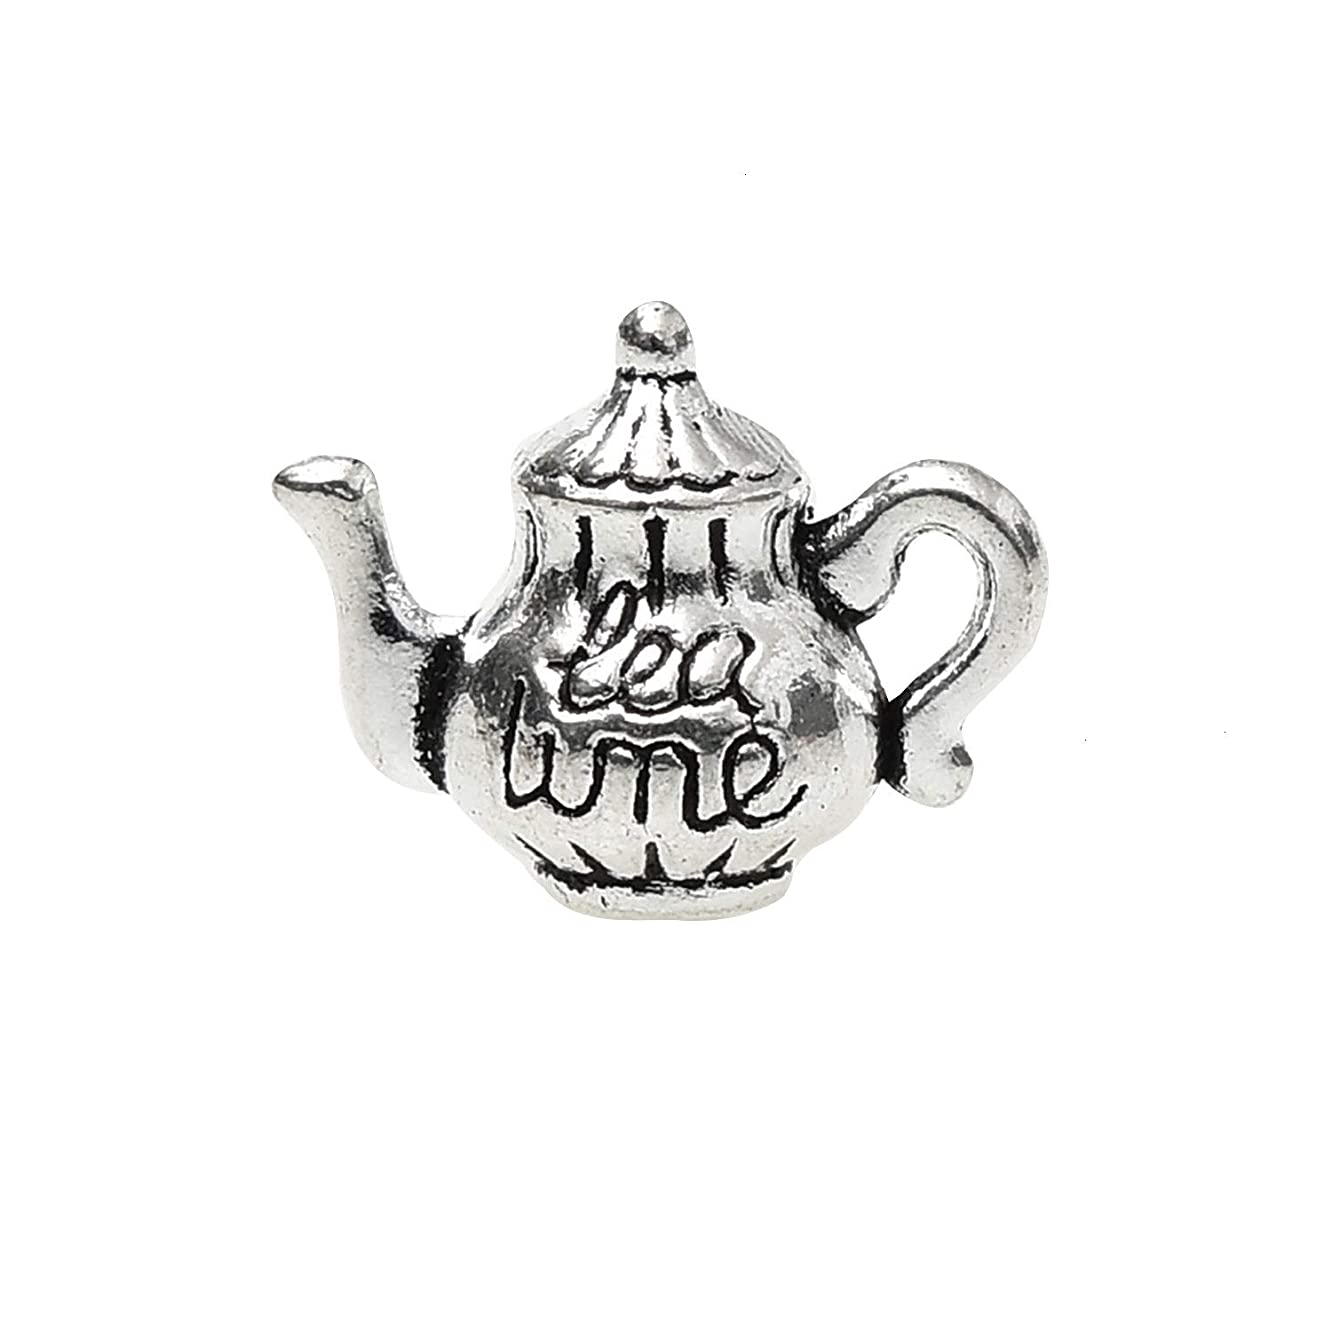 Monrocco 40 Pieces Silver Teapot Teapot Tea Kettle Pot Charms Pendants for Jewelry Making Crafting Necklace Earrings